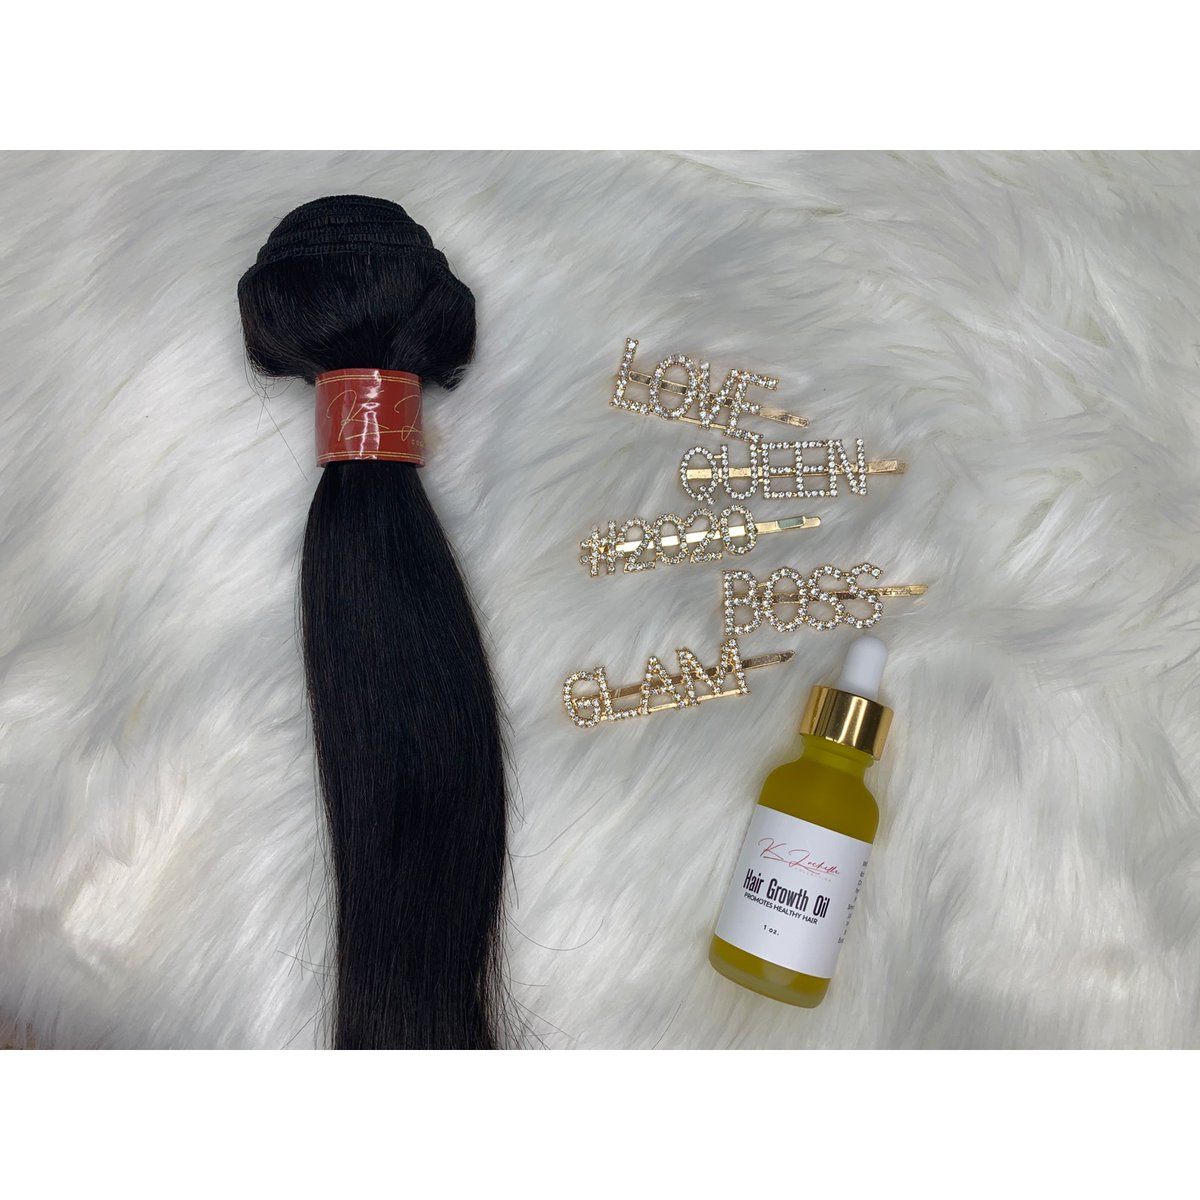 Bundles starting at $65. CHECK OUT our BRAZILIAN, MINK and PERUVIAN HAIR and DEALS at http://www.klachellecollection.com . . #hairbundles #bundles #bundledeals #mink #brazilian #peruvian #bundledeals #minkhair #peruvianhair #brazilhair #brazilianhair #luxuryhair #hairpins #diamondhairpinspic.twitter.com/xvwtgOMgLR